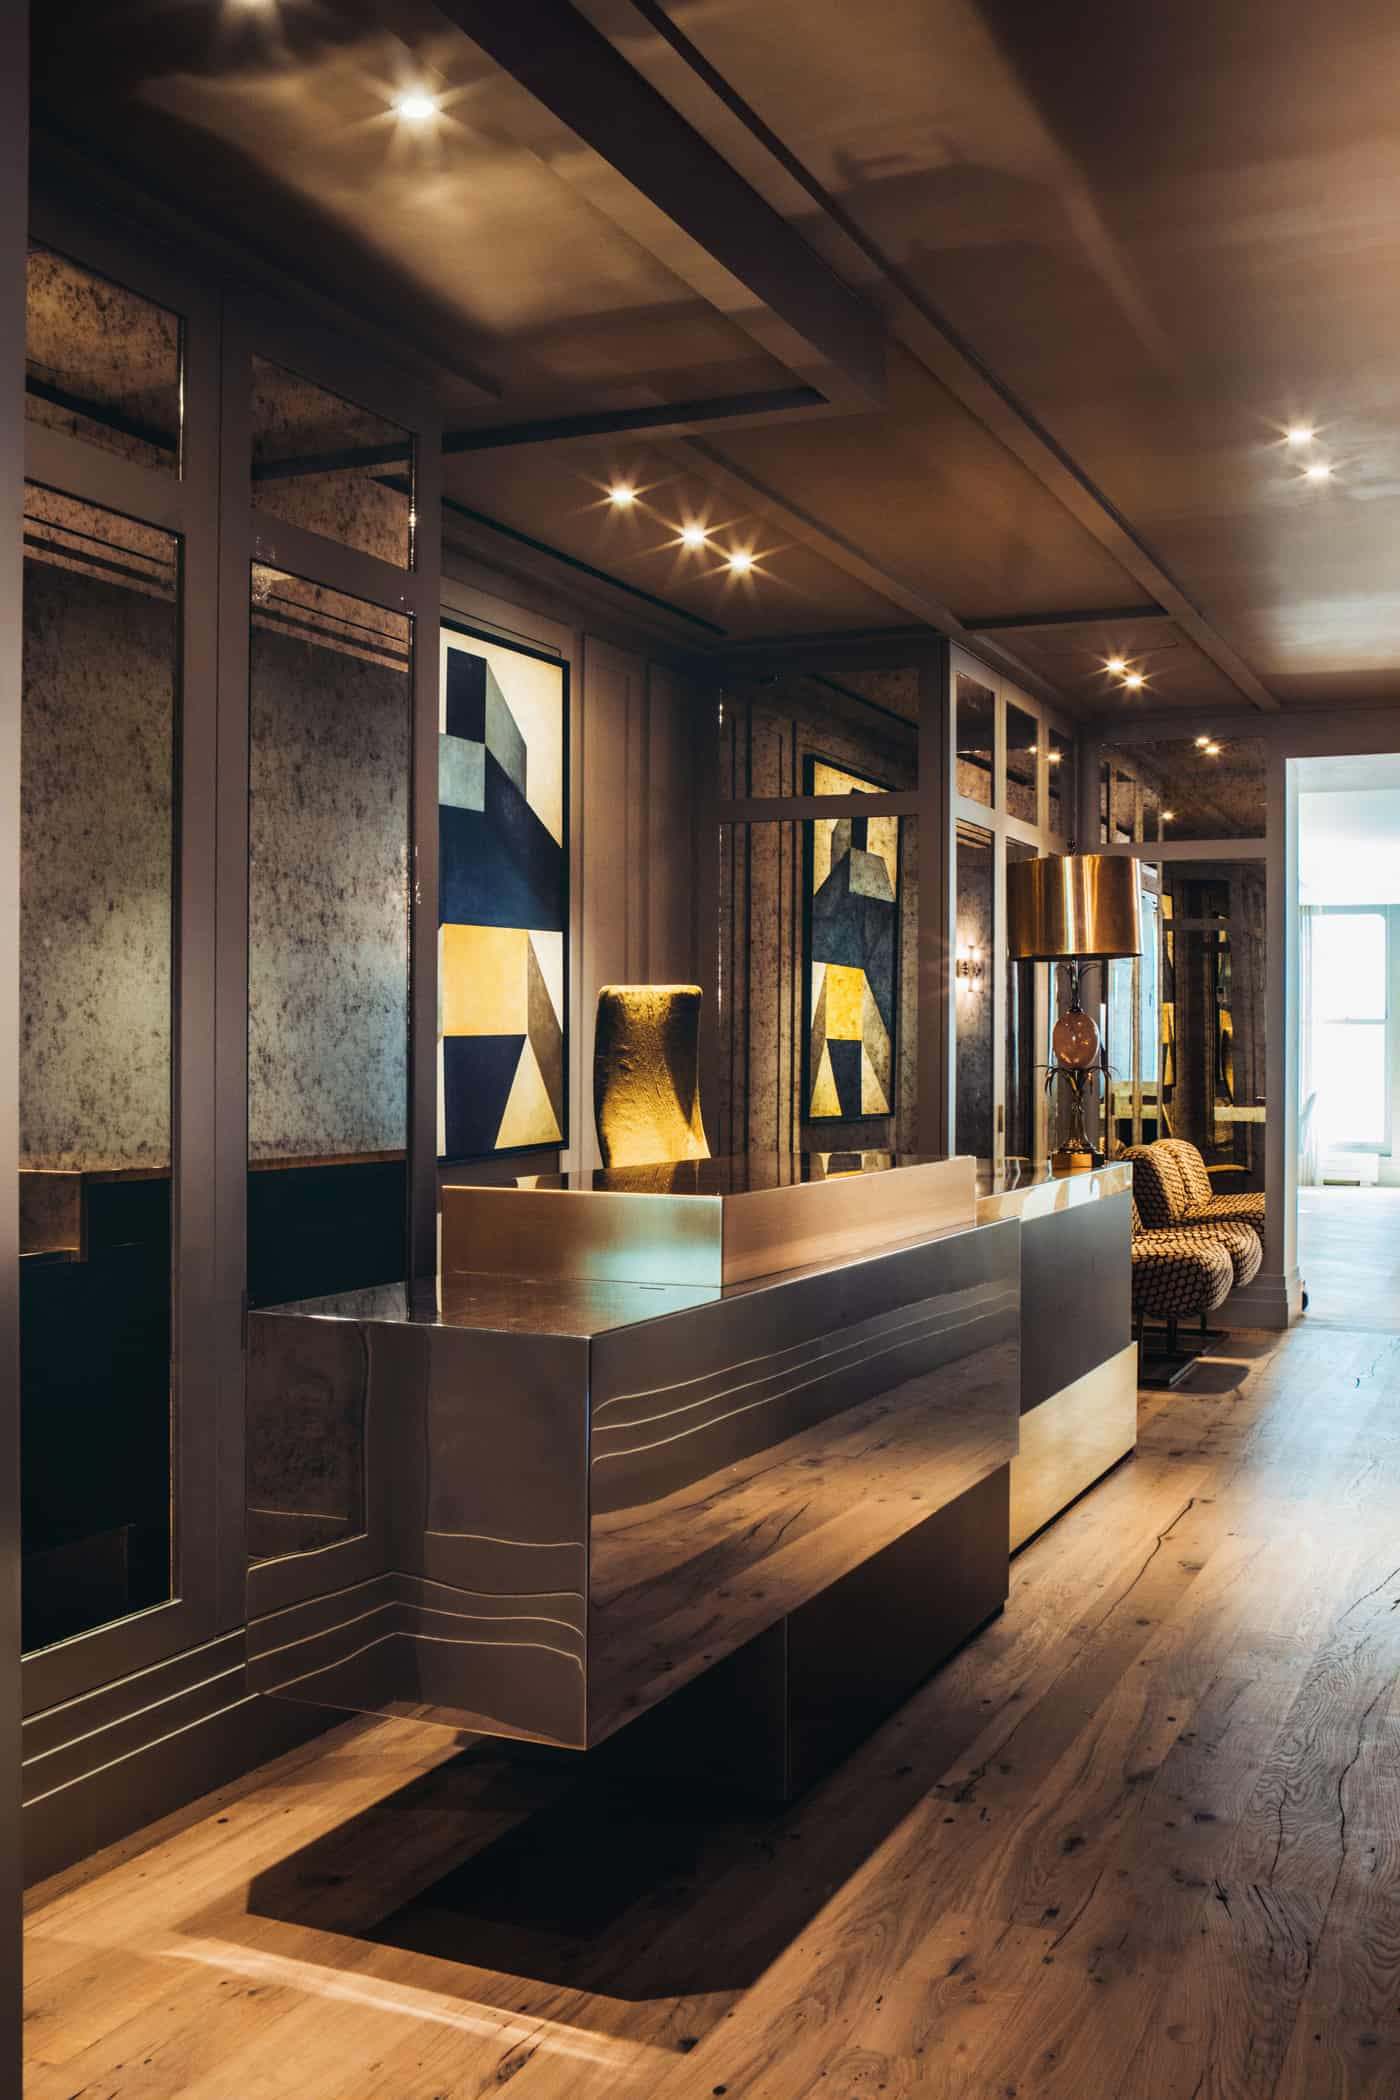 Salon David Mallett David Mallett Brings Paris To New York With New Salon At The Webster